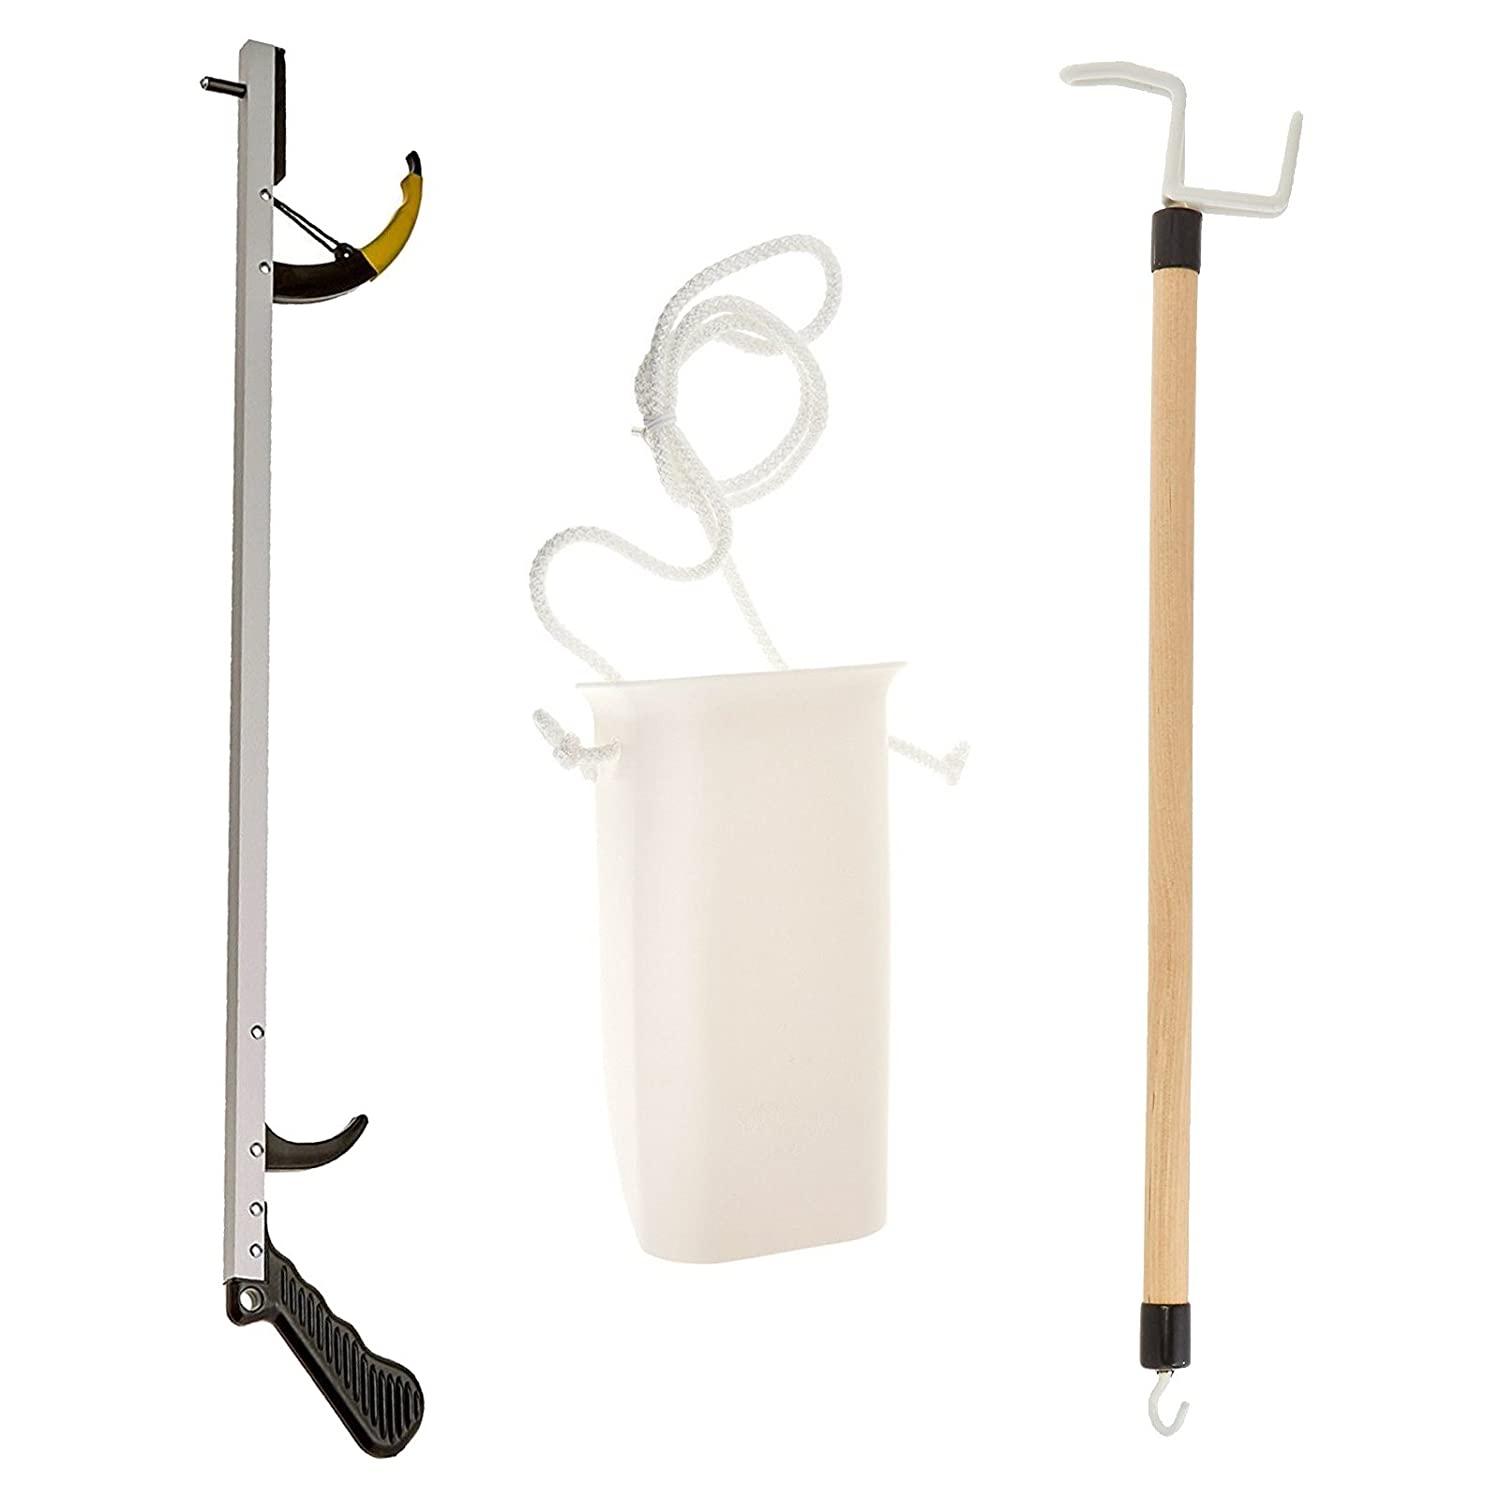 """Sammons Preston 49853 Assistive Device Kit 5, Includes 26"""" SPR Reacher, Wide Sock Aid & 26"""" Dressing Stick, Adaptive Dressing & Independent Daily Living Aid for Those with Limited Reaching Ability: Industrial & Scientific"""